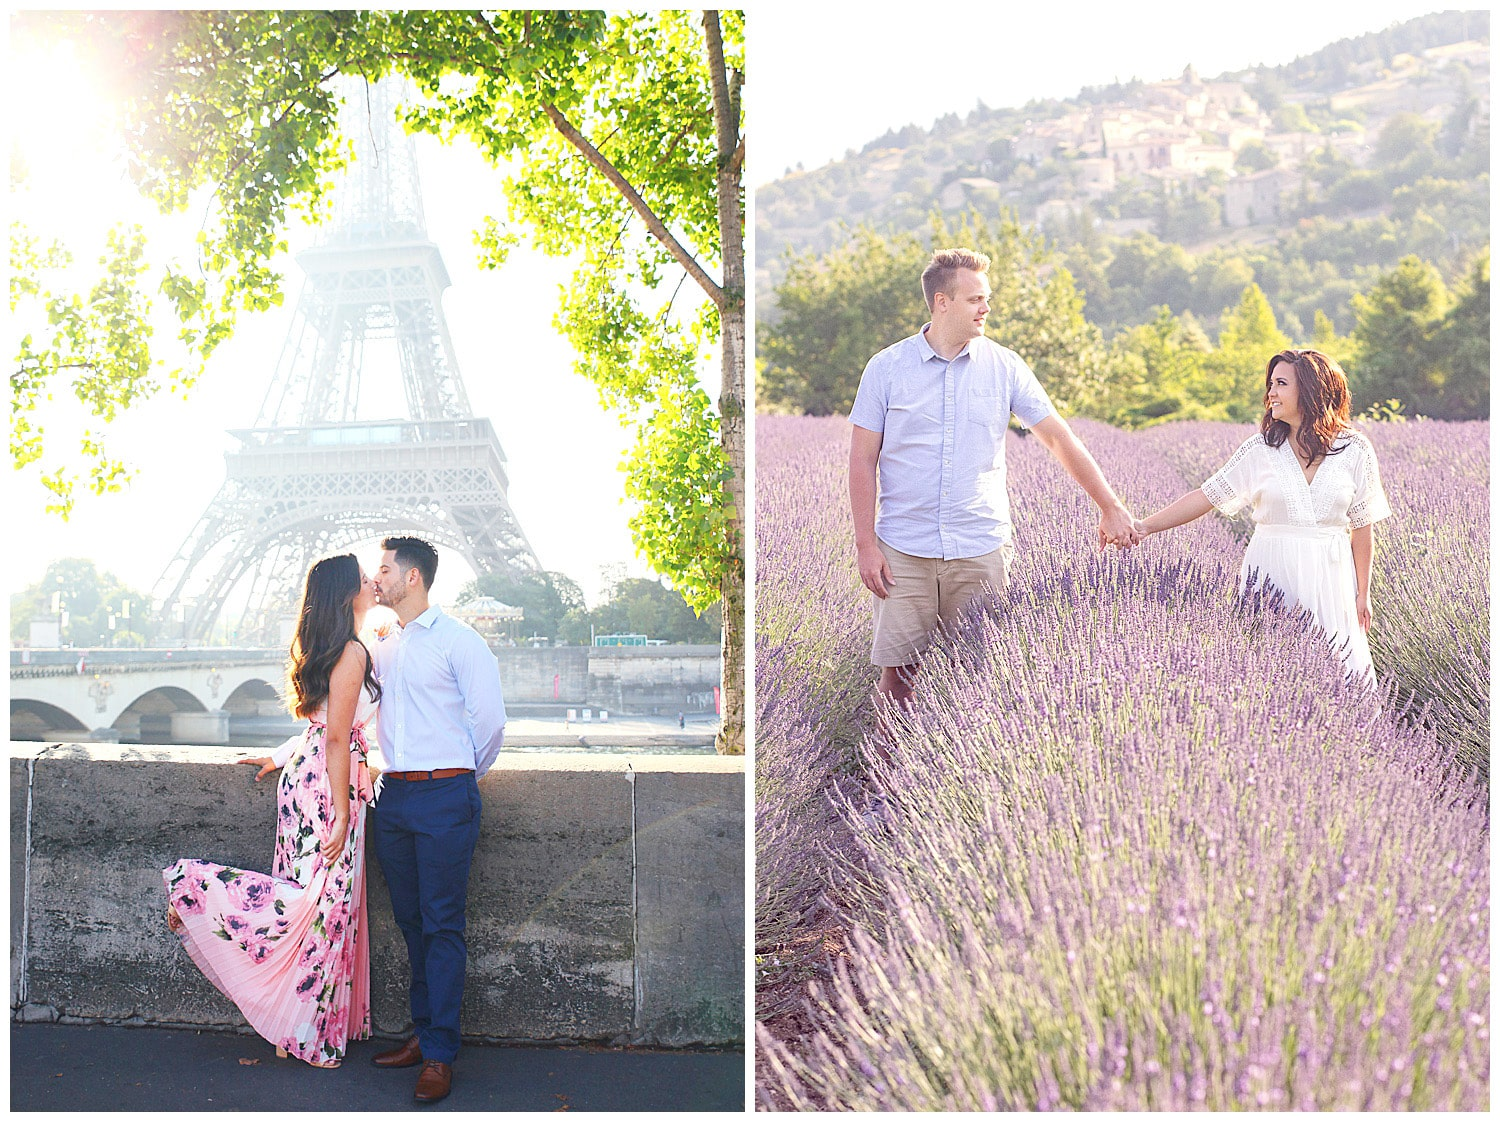 Marie-Calfopoulos-photographer-Provence-Luberon-Avignon-couple-engagement-love-photo-session_0001